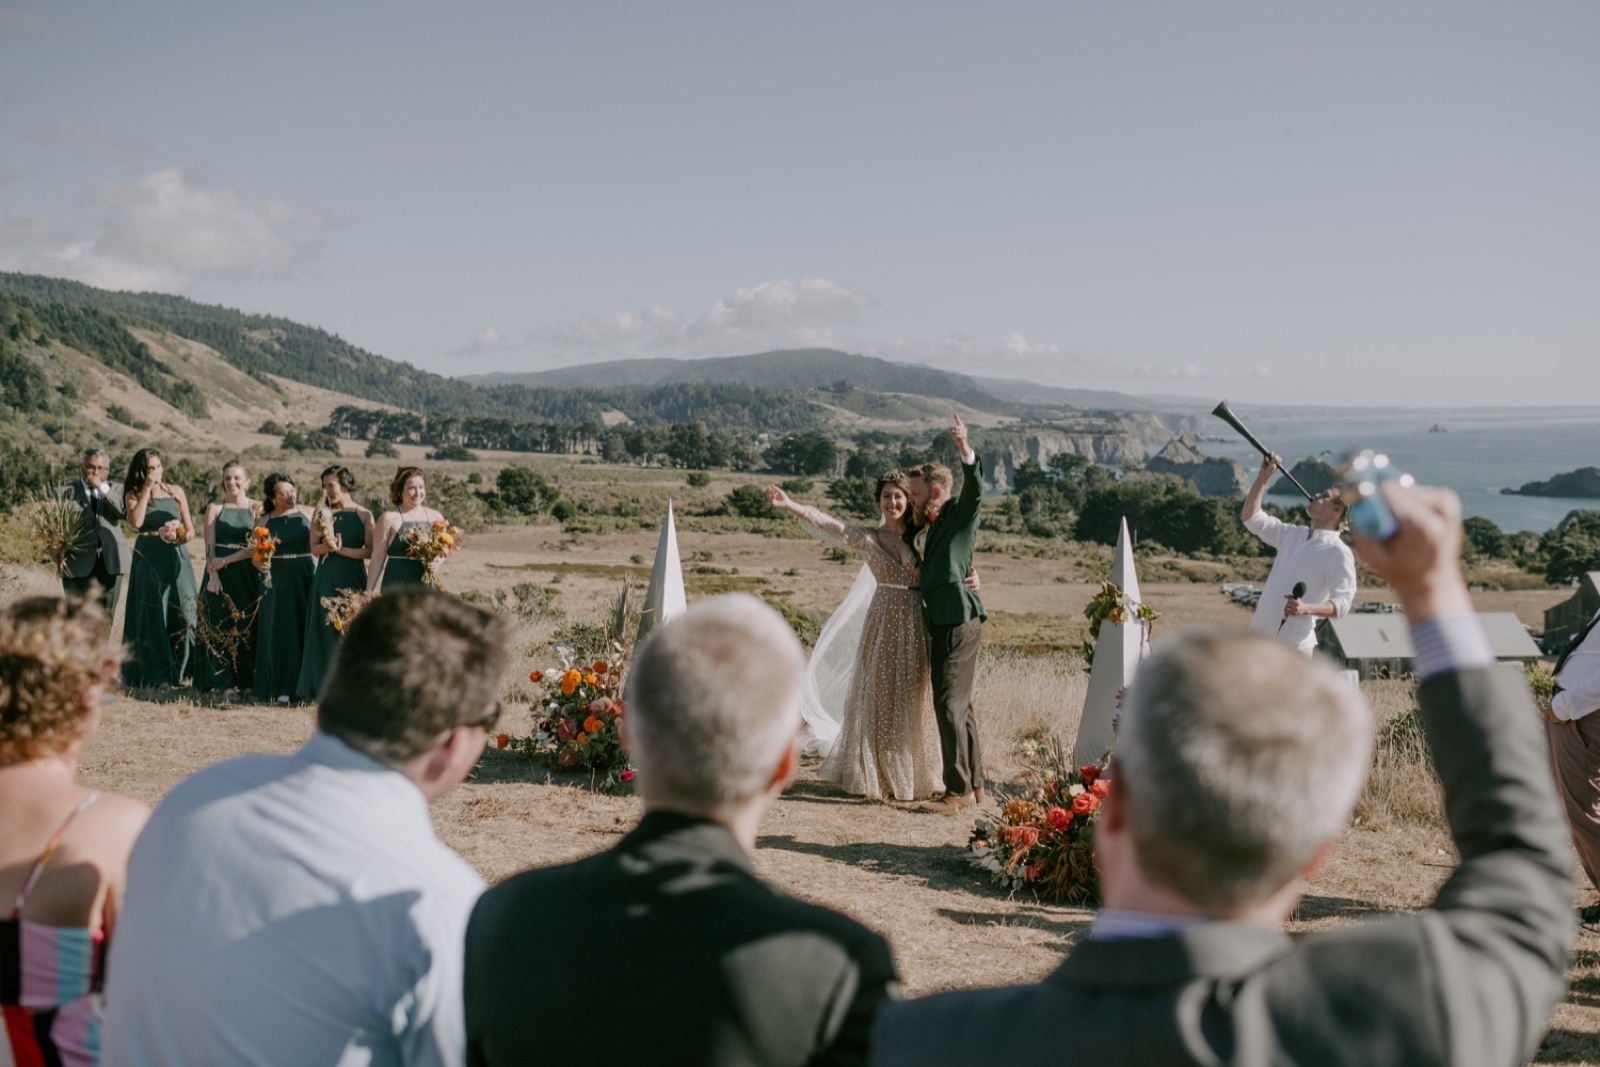 Mendocino_Wedding_Cuffeys_Cove089.JPG